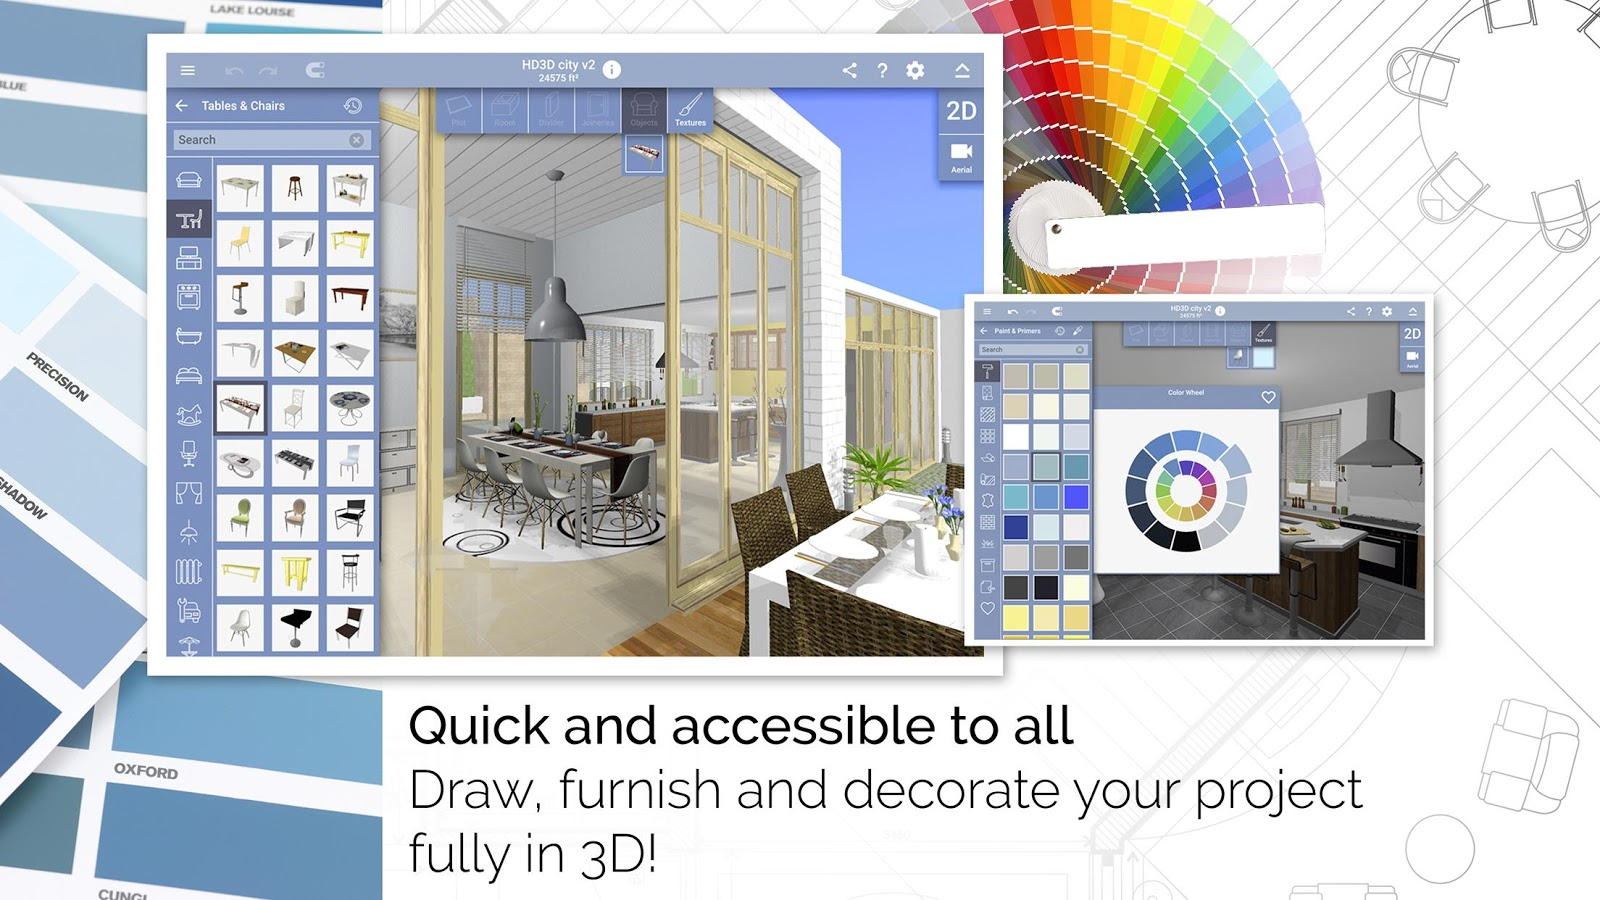 Home design 3d freemium android apps on google play - Home design software app ...